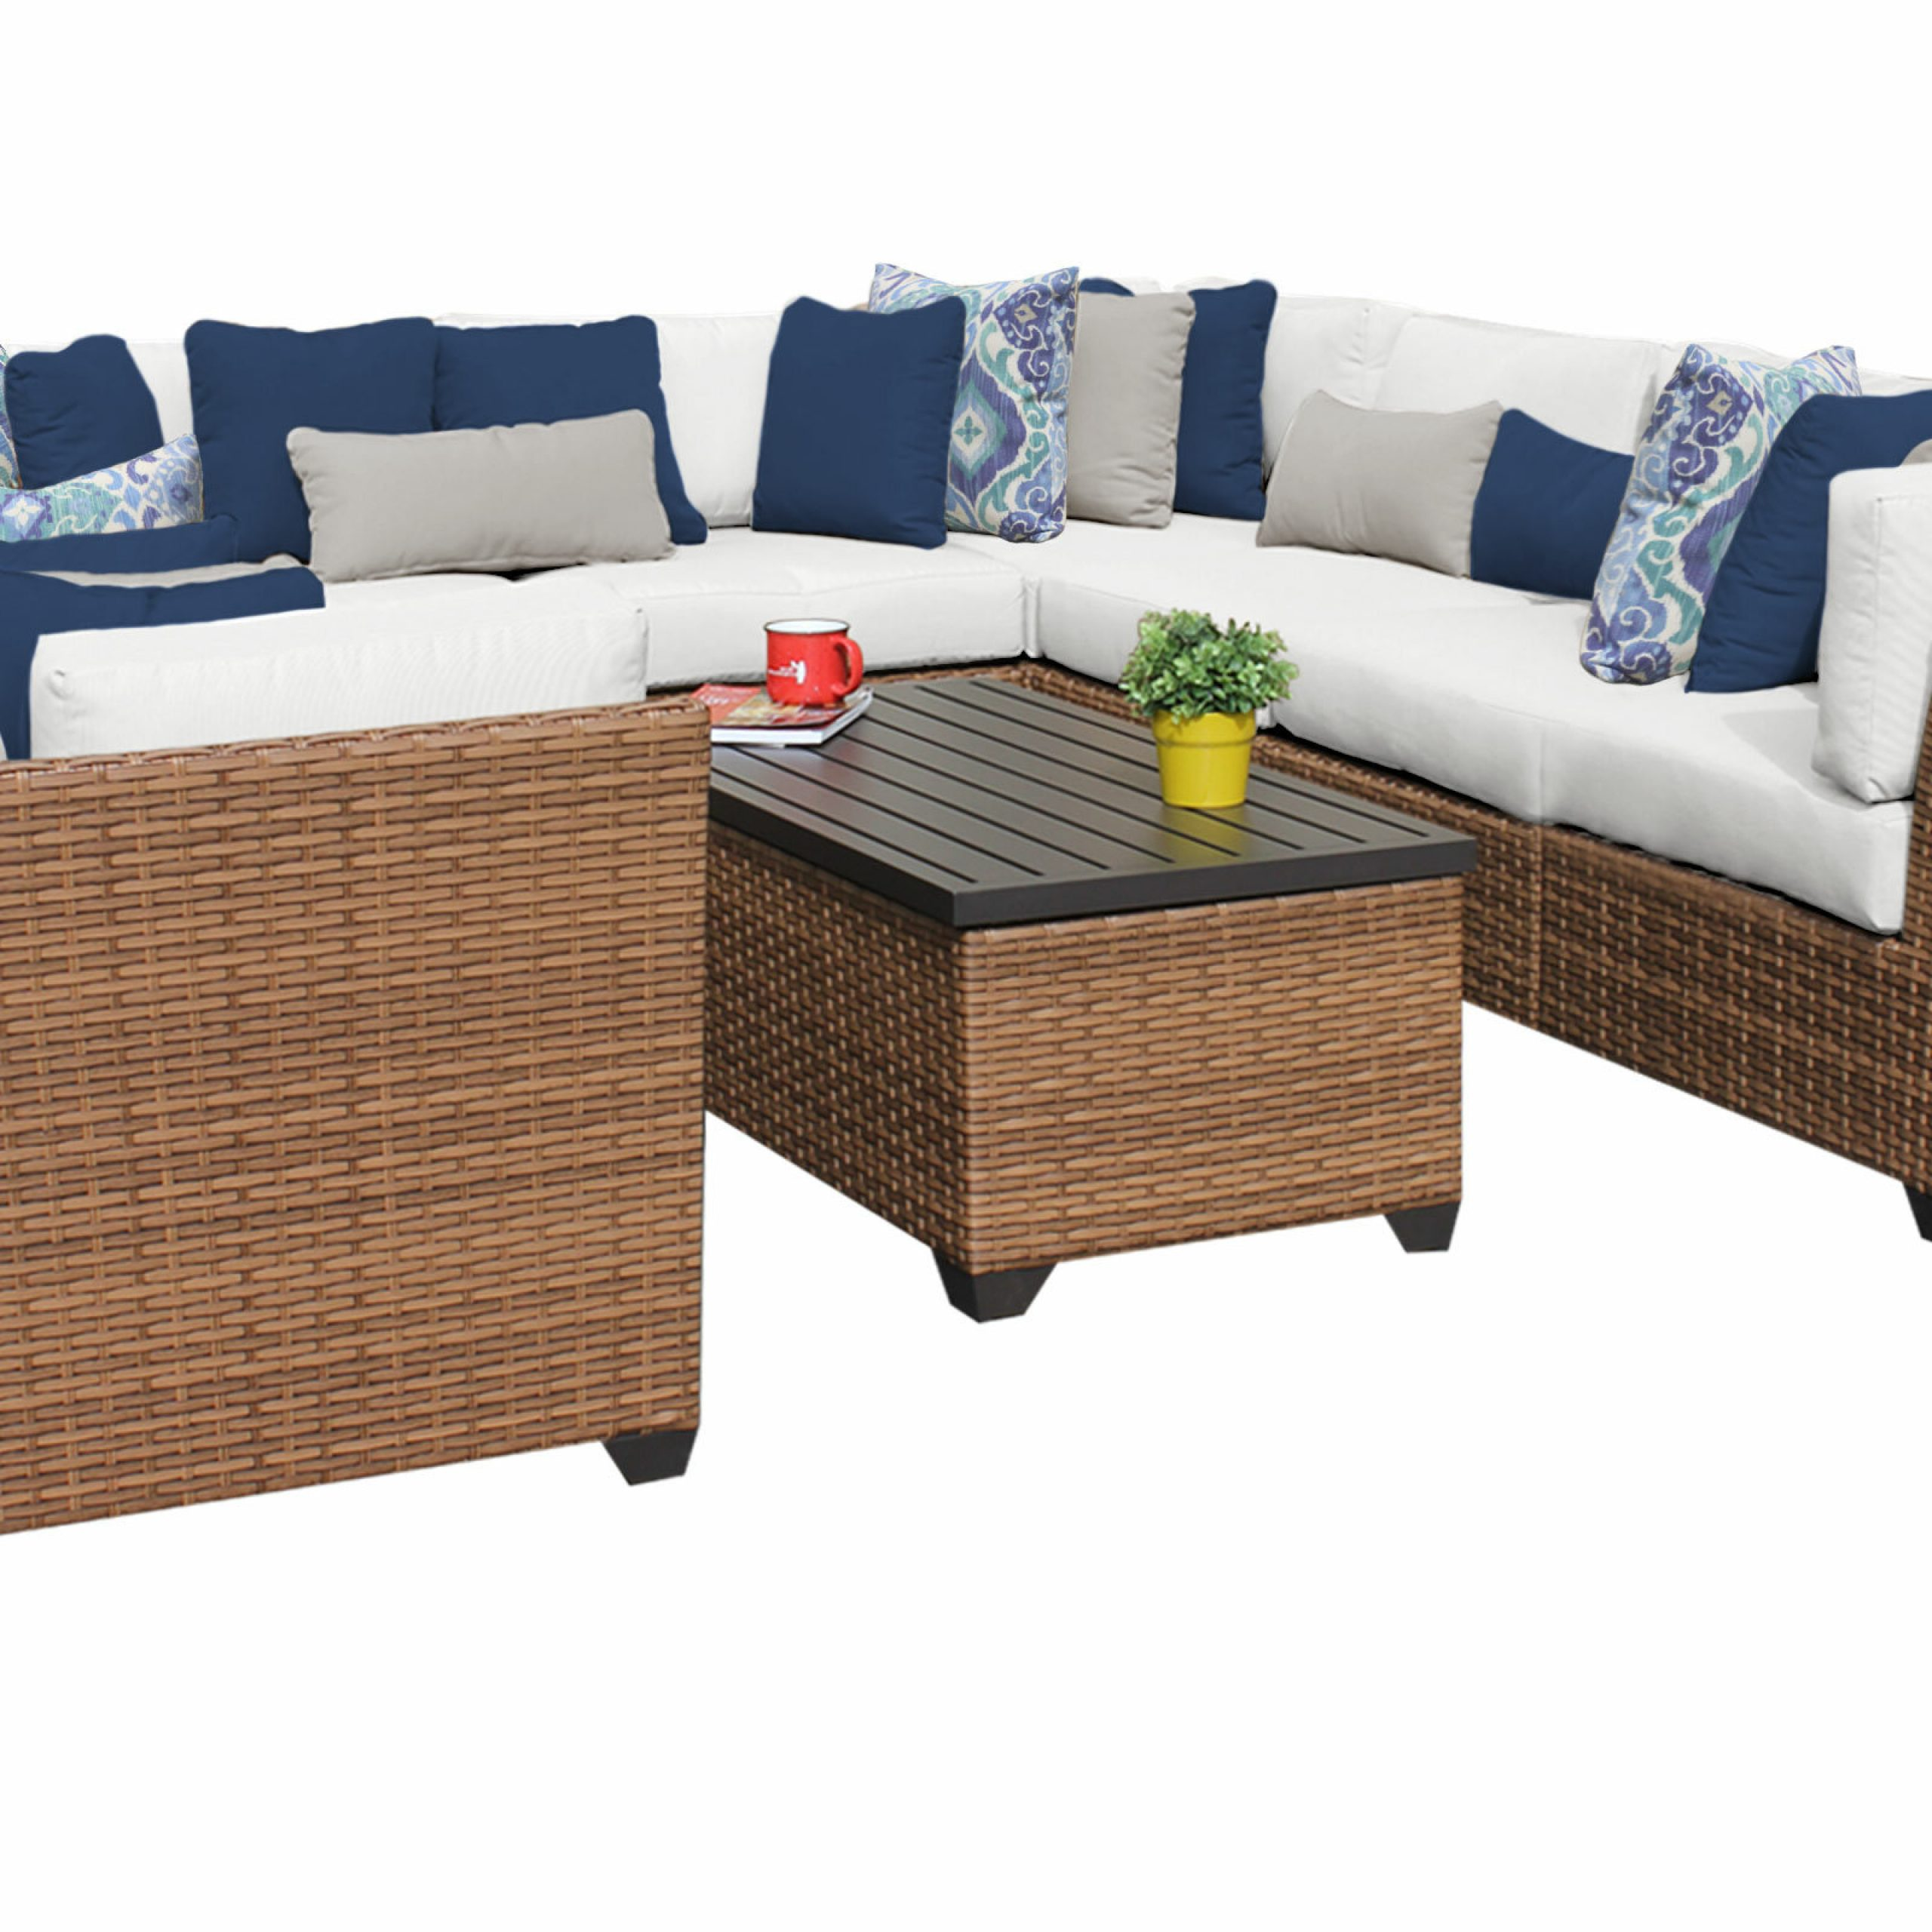 Waterbury Patio Sectionals With Cushions With Latest Waterbury 11 Piece Sectional Seating Group With Cushions (View 6 of 25)